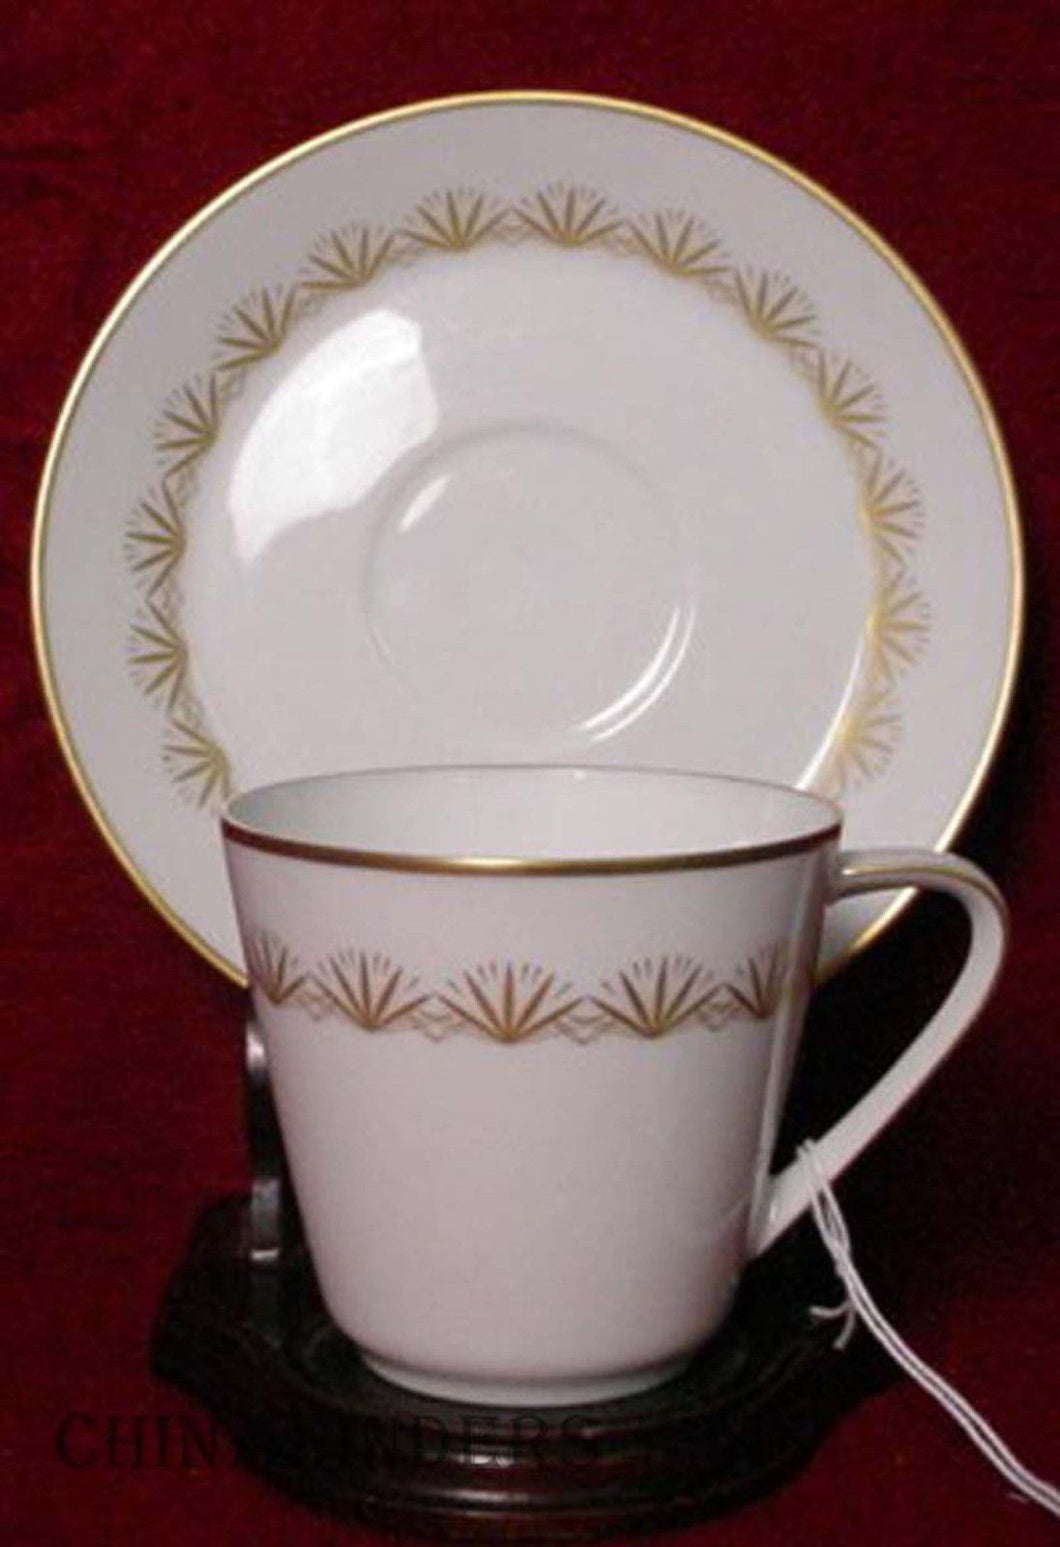 HUTSCHENREUTHER china CHERRYWOOD 1105 pattern Cup & Saucer